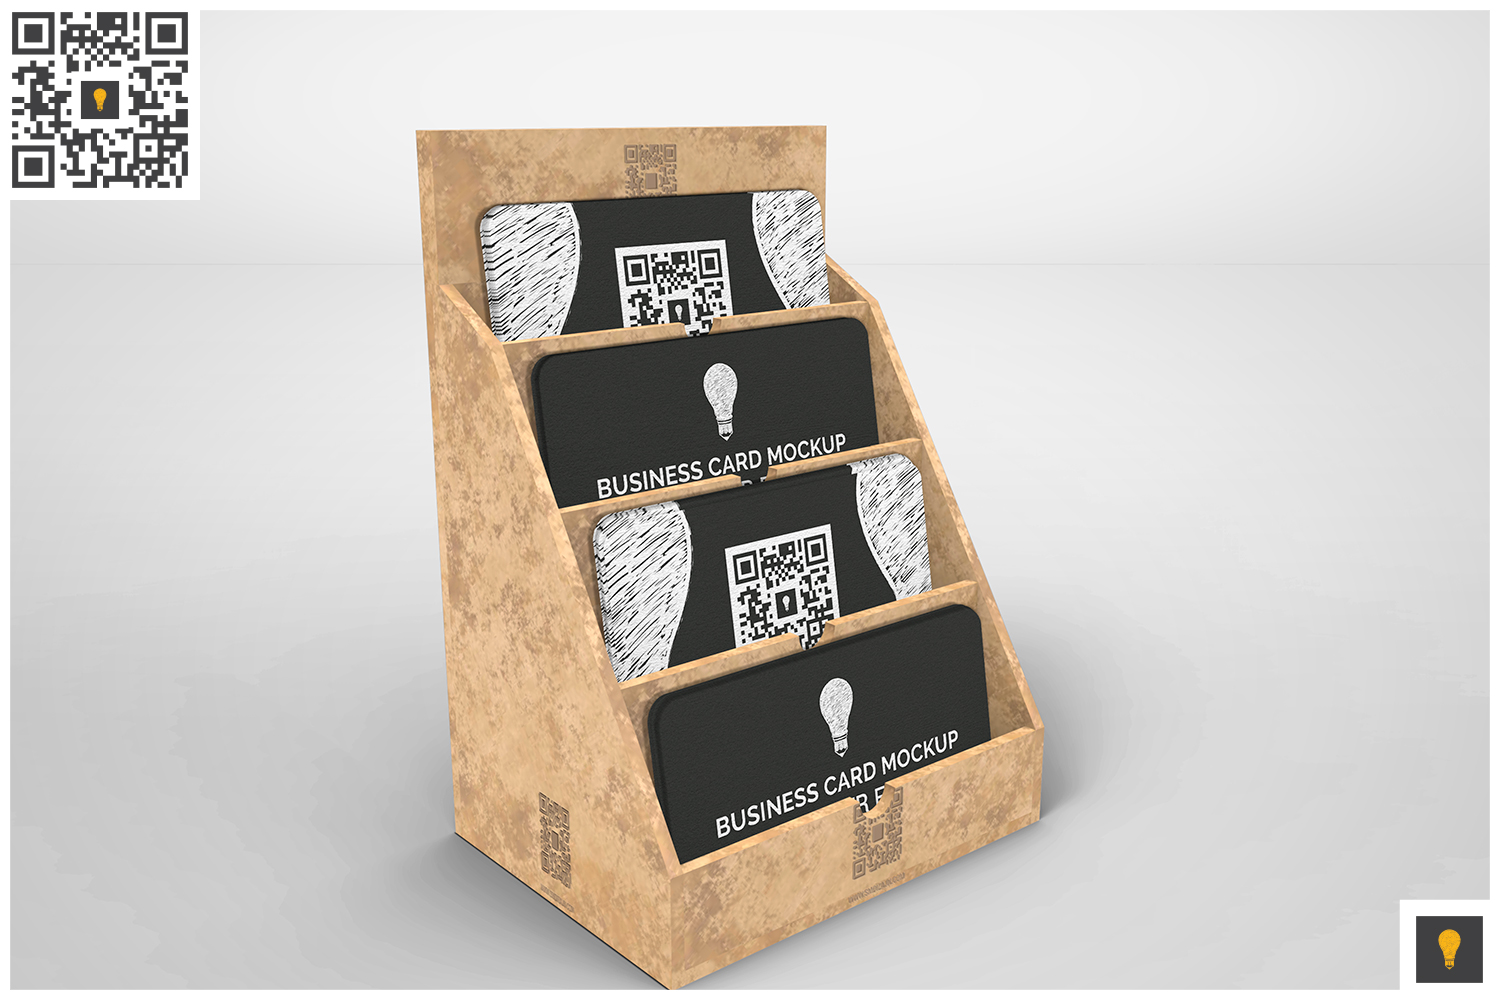 Business Card Holder Mockup example image 7